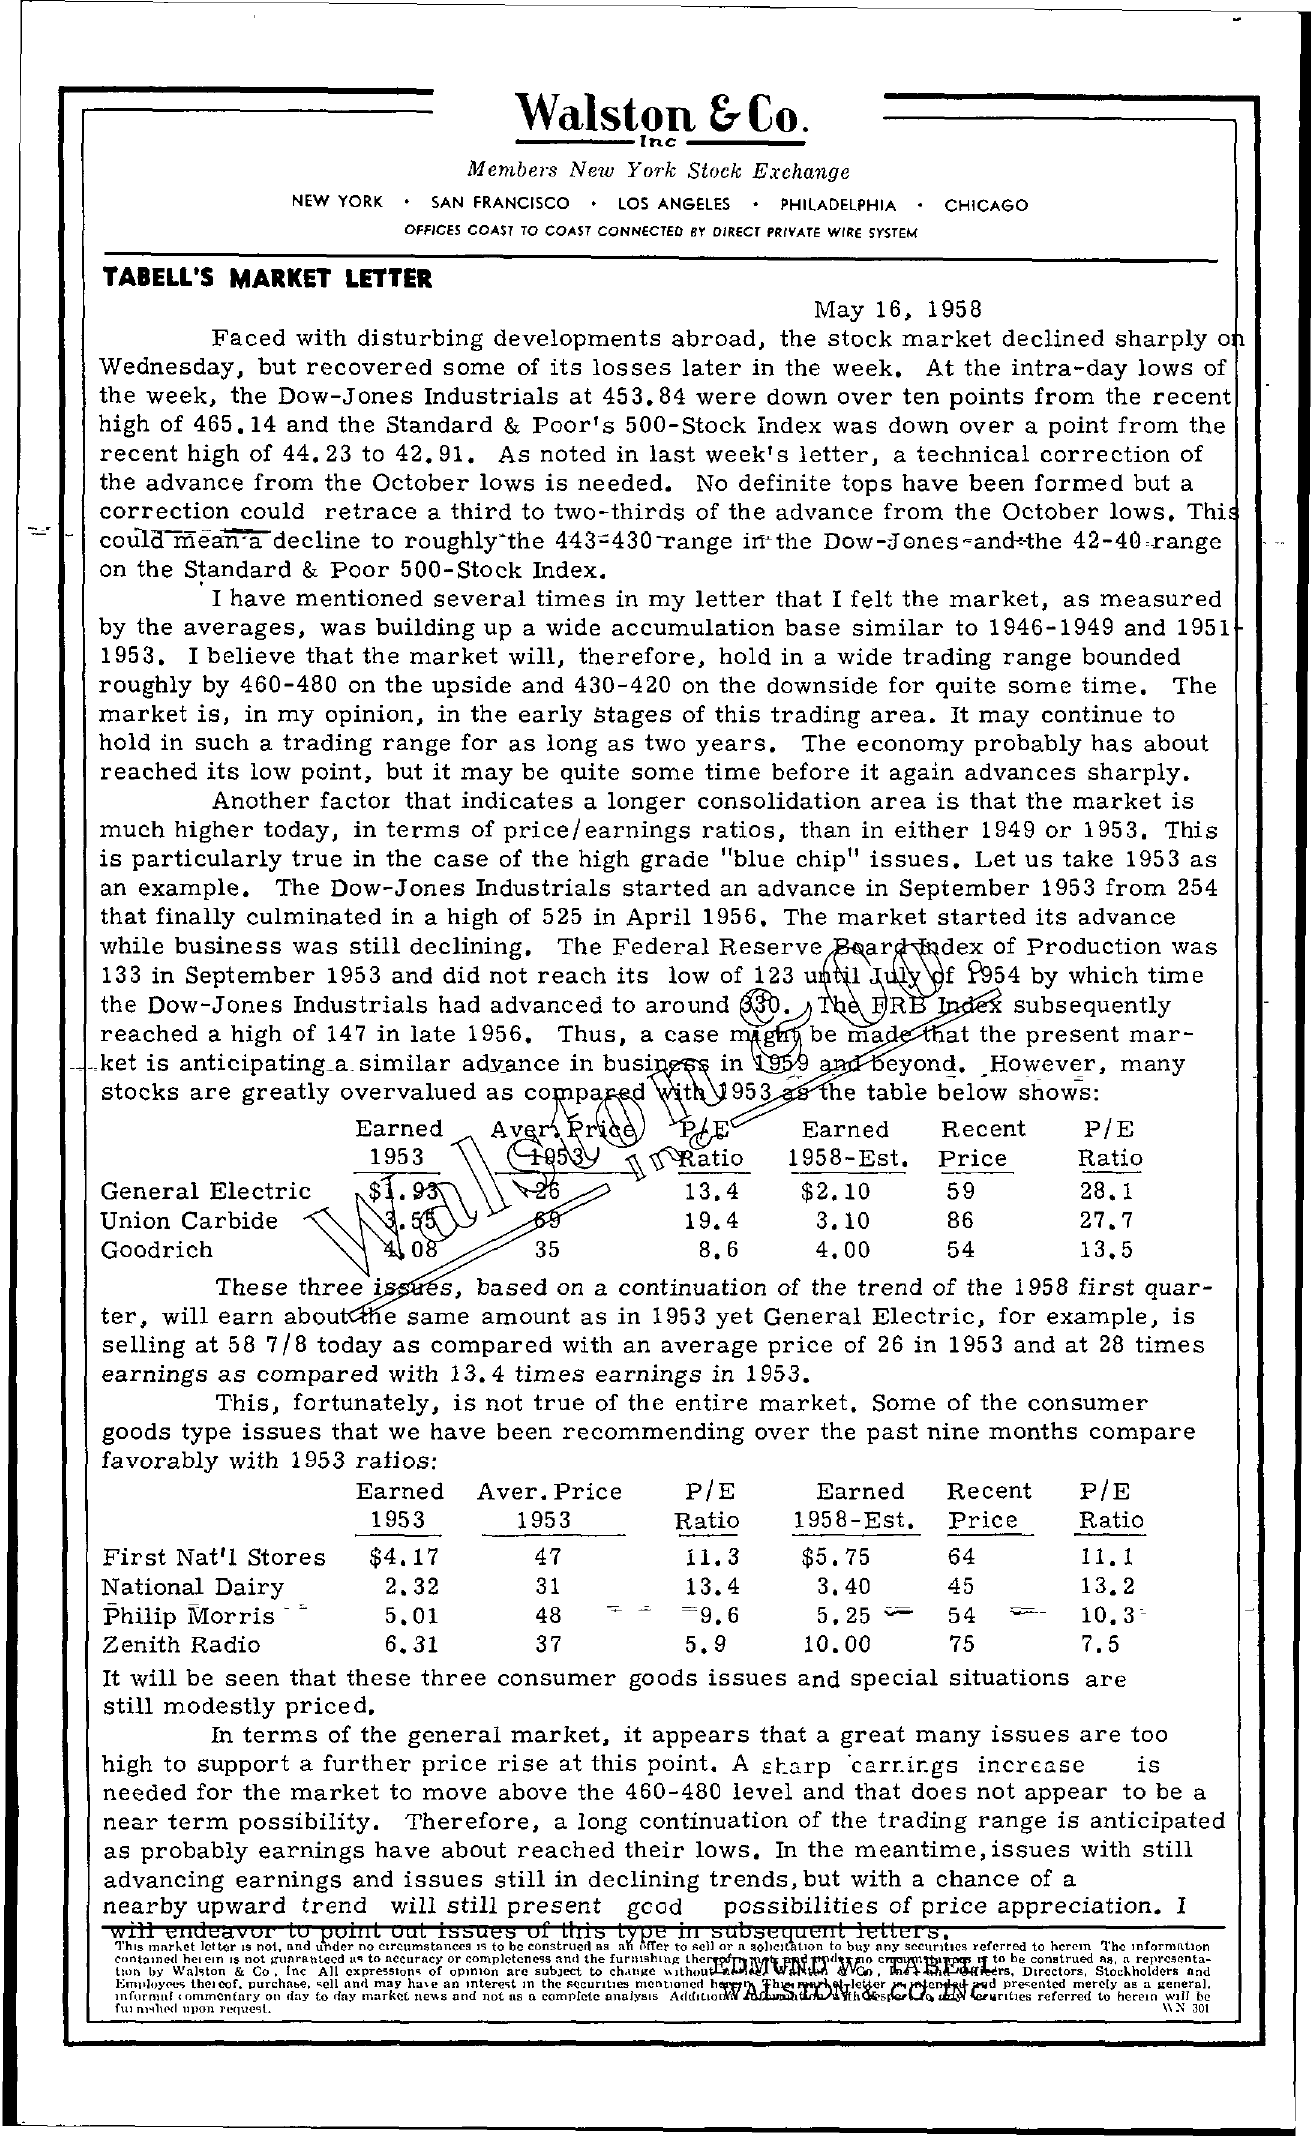 Tabell's Market Letter - May 16, 1958